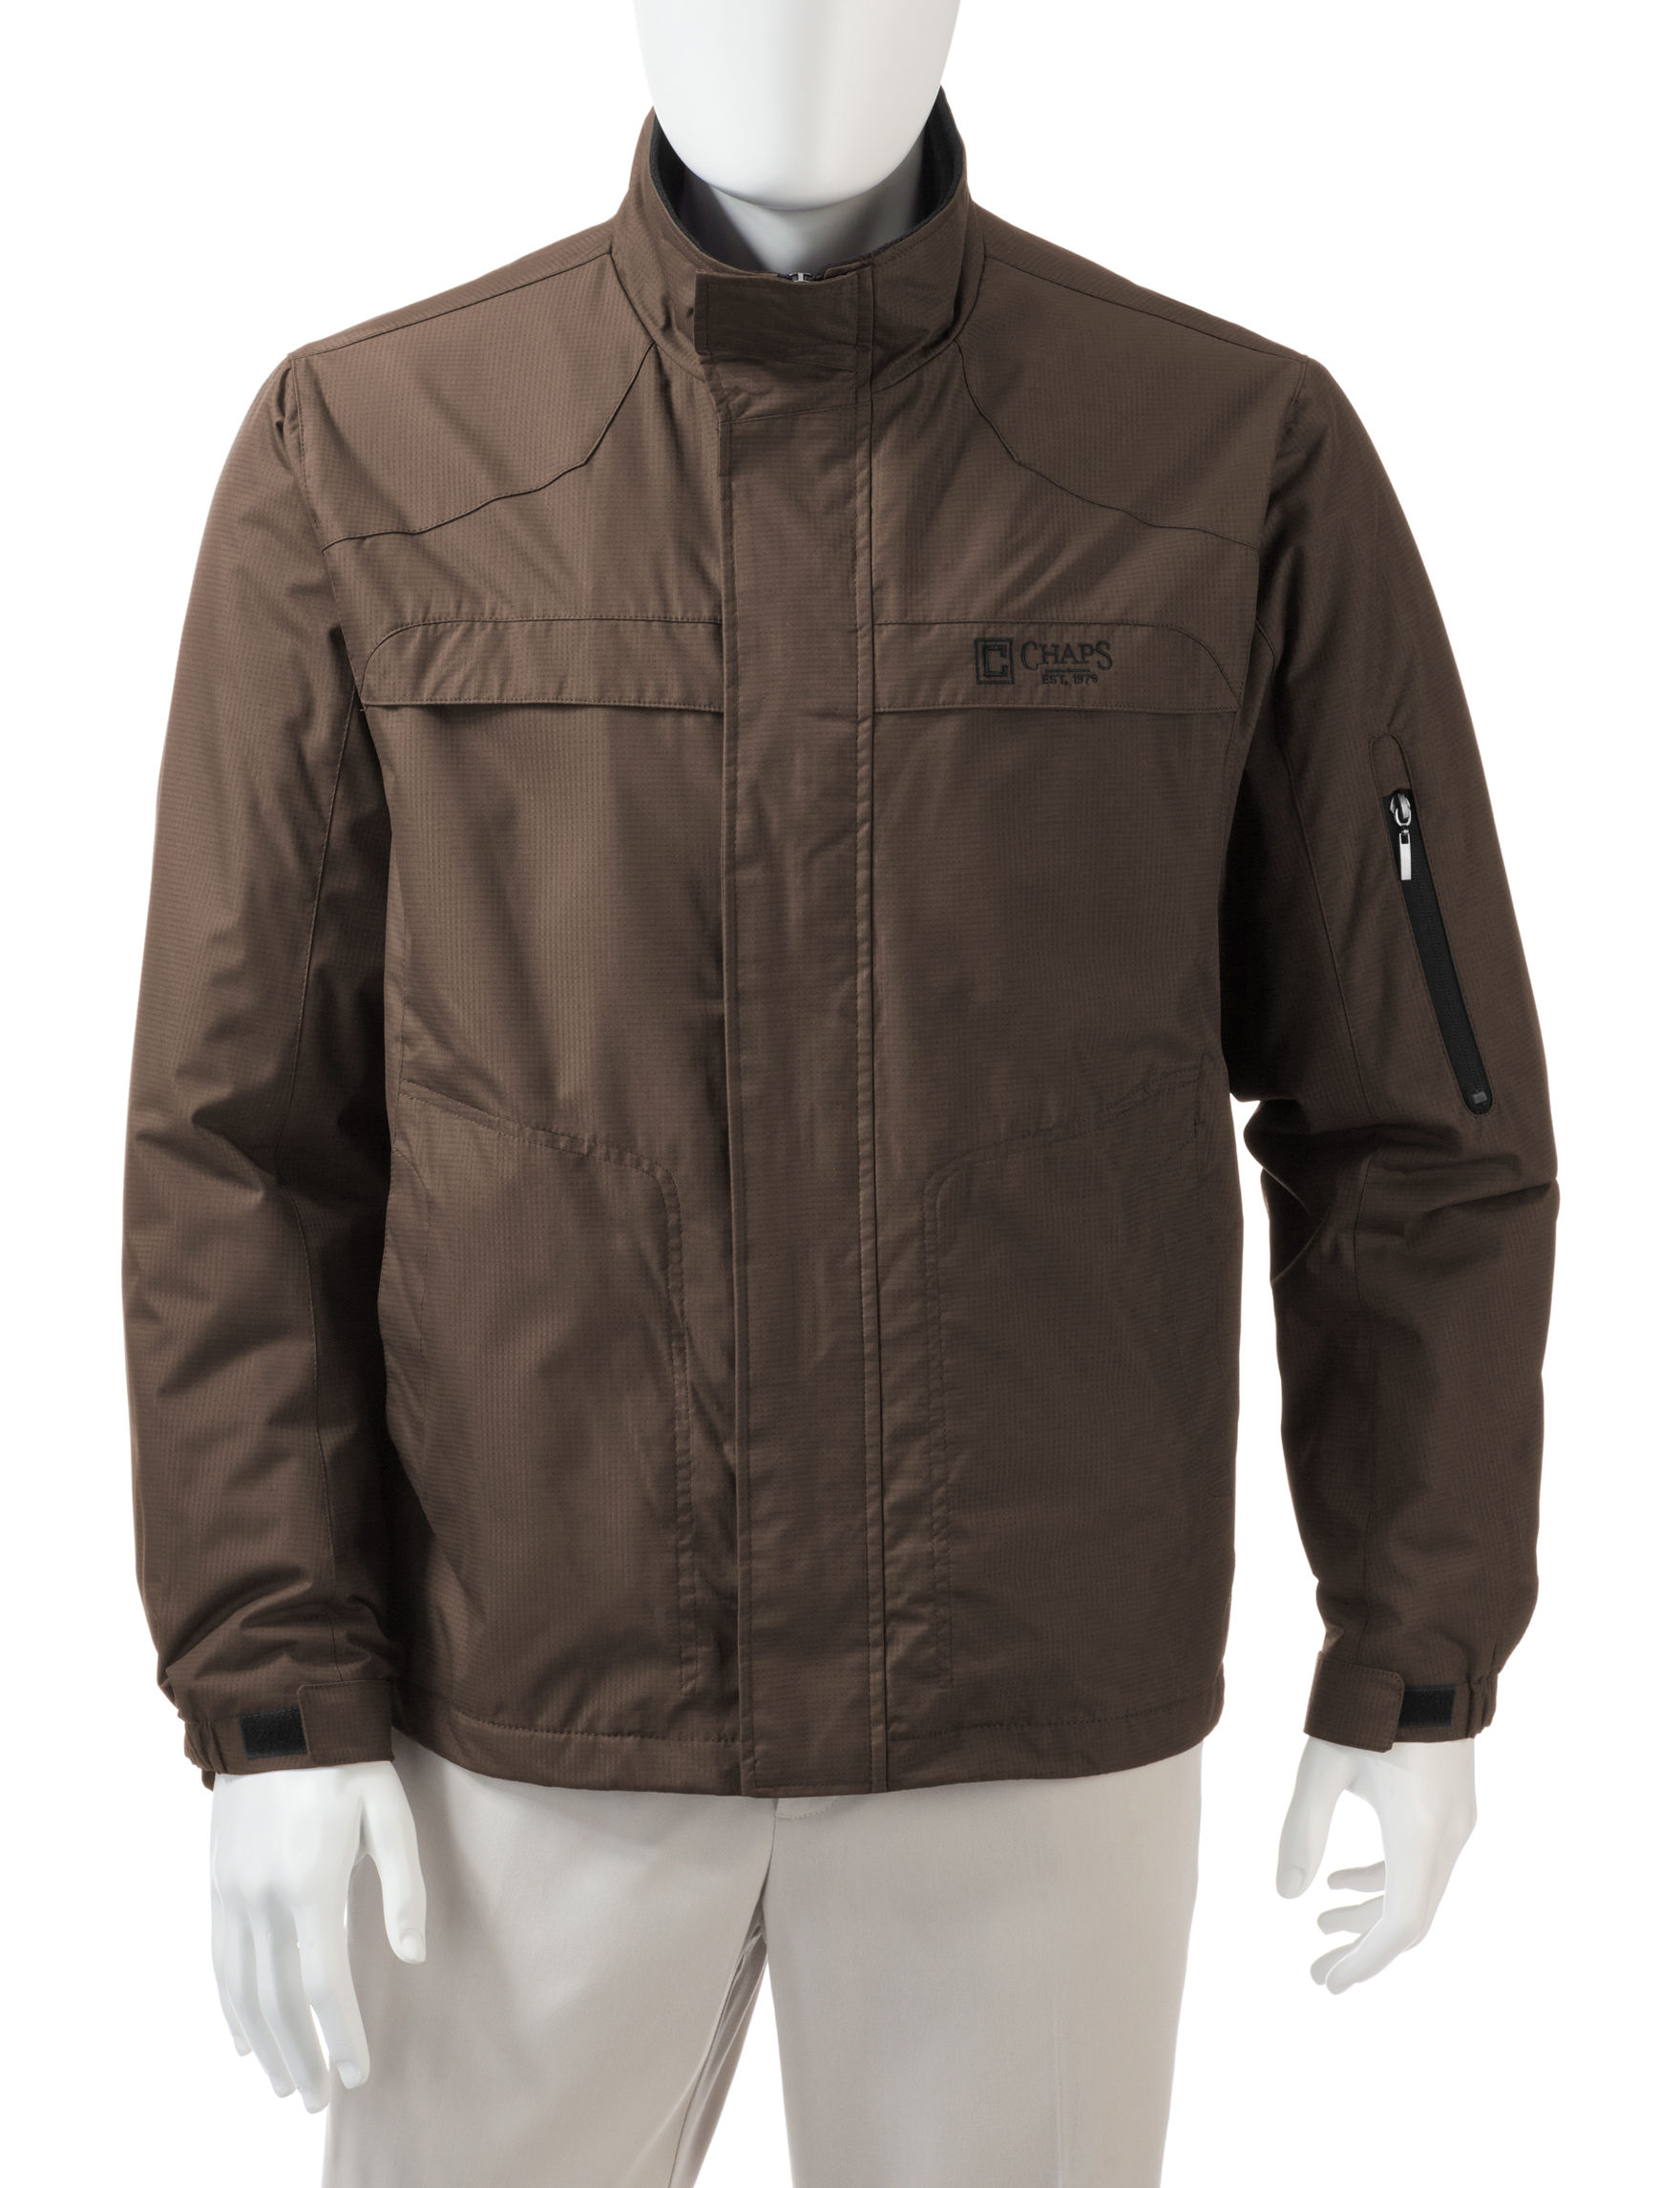 Chaps Chocolate Insulated Jackets